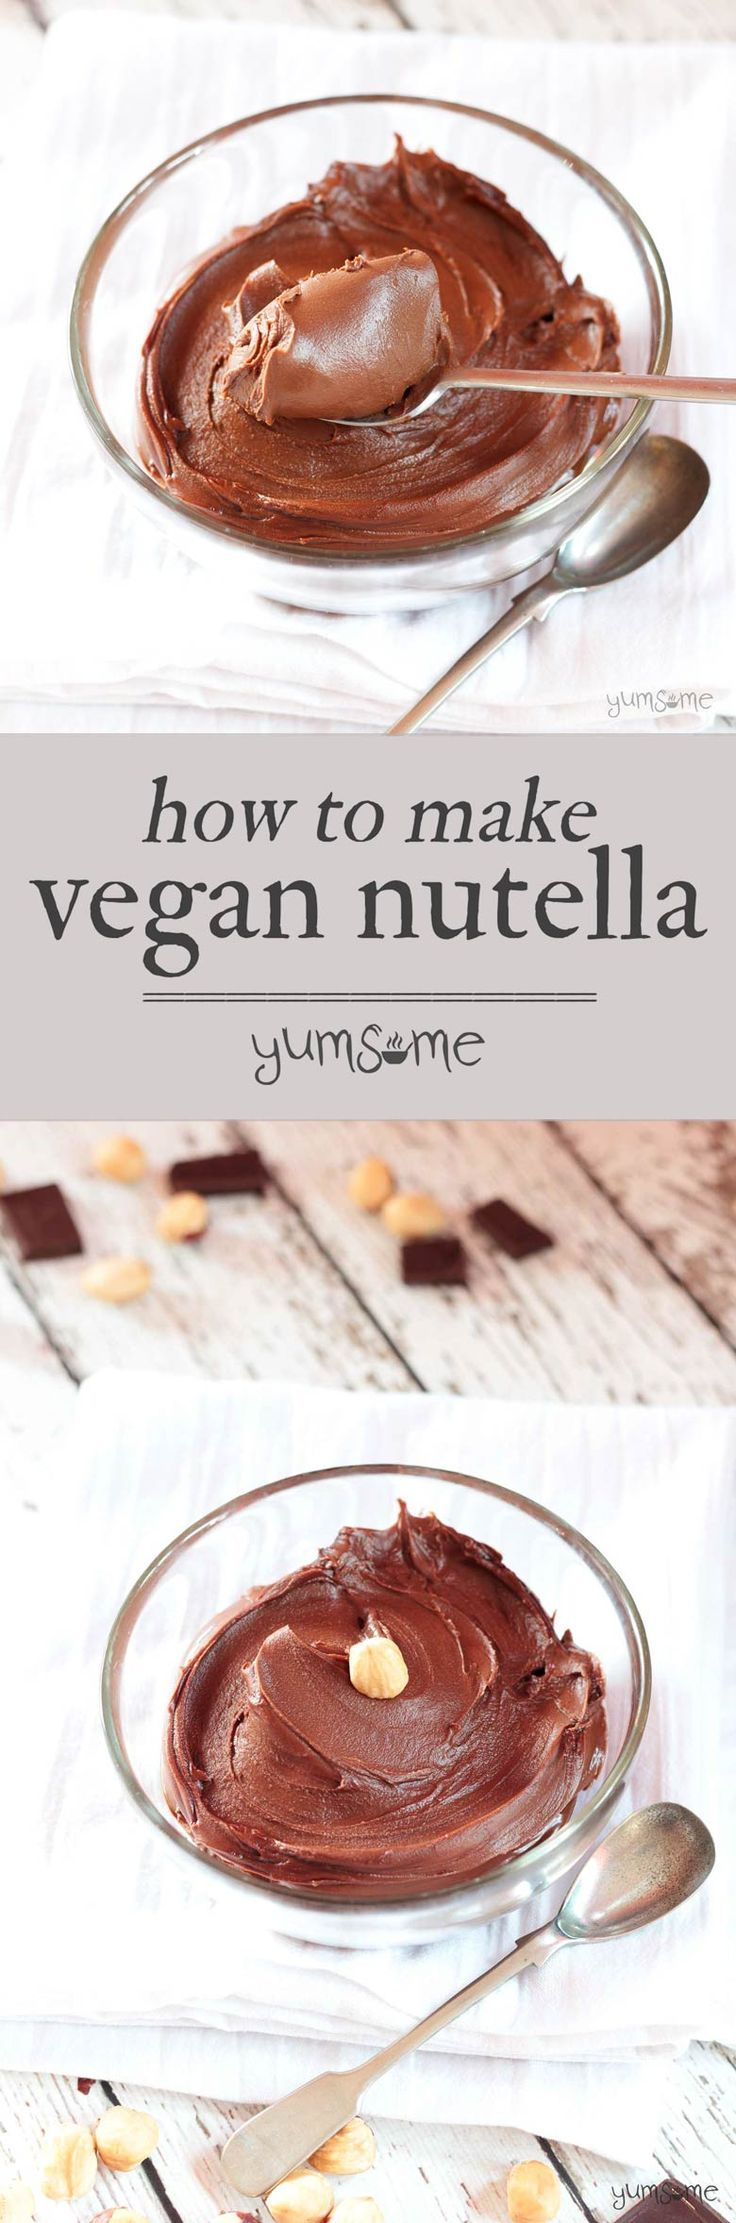 Made With Just Half A Dozen Ingredients And Ready In Half An Hour This Vegan Nutella Is Really Easy To M Vegan Dessert Recipes Vegan Nutella Vegan Desserts